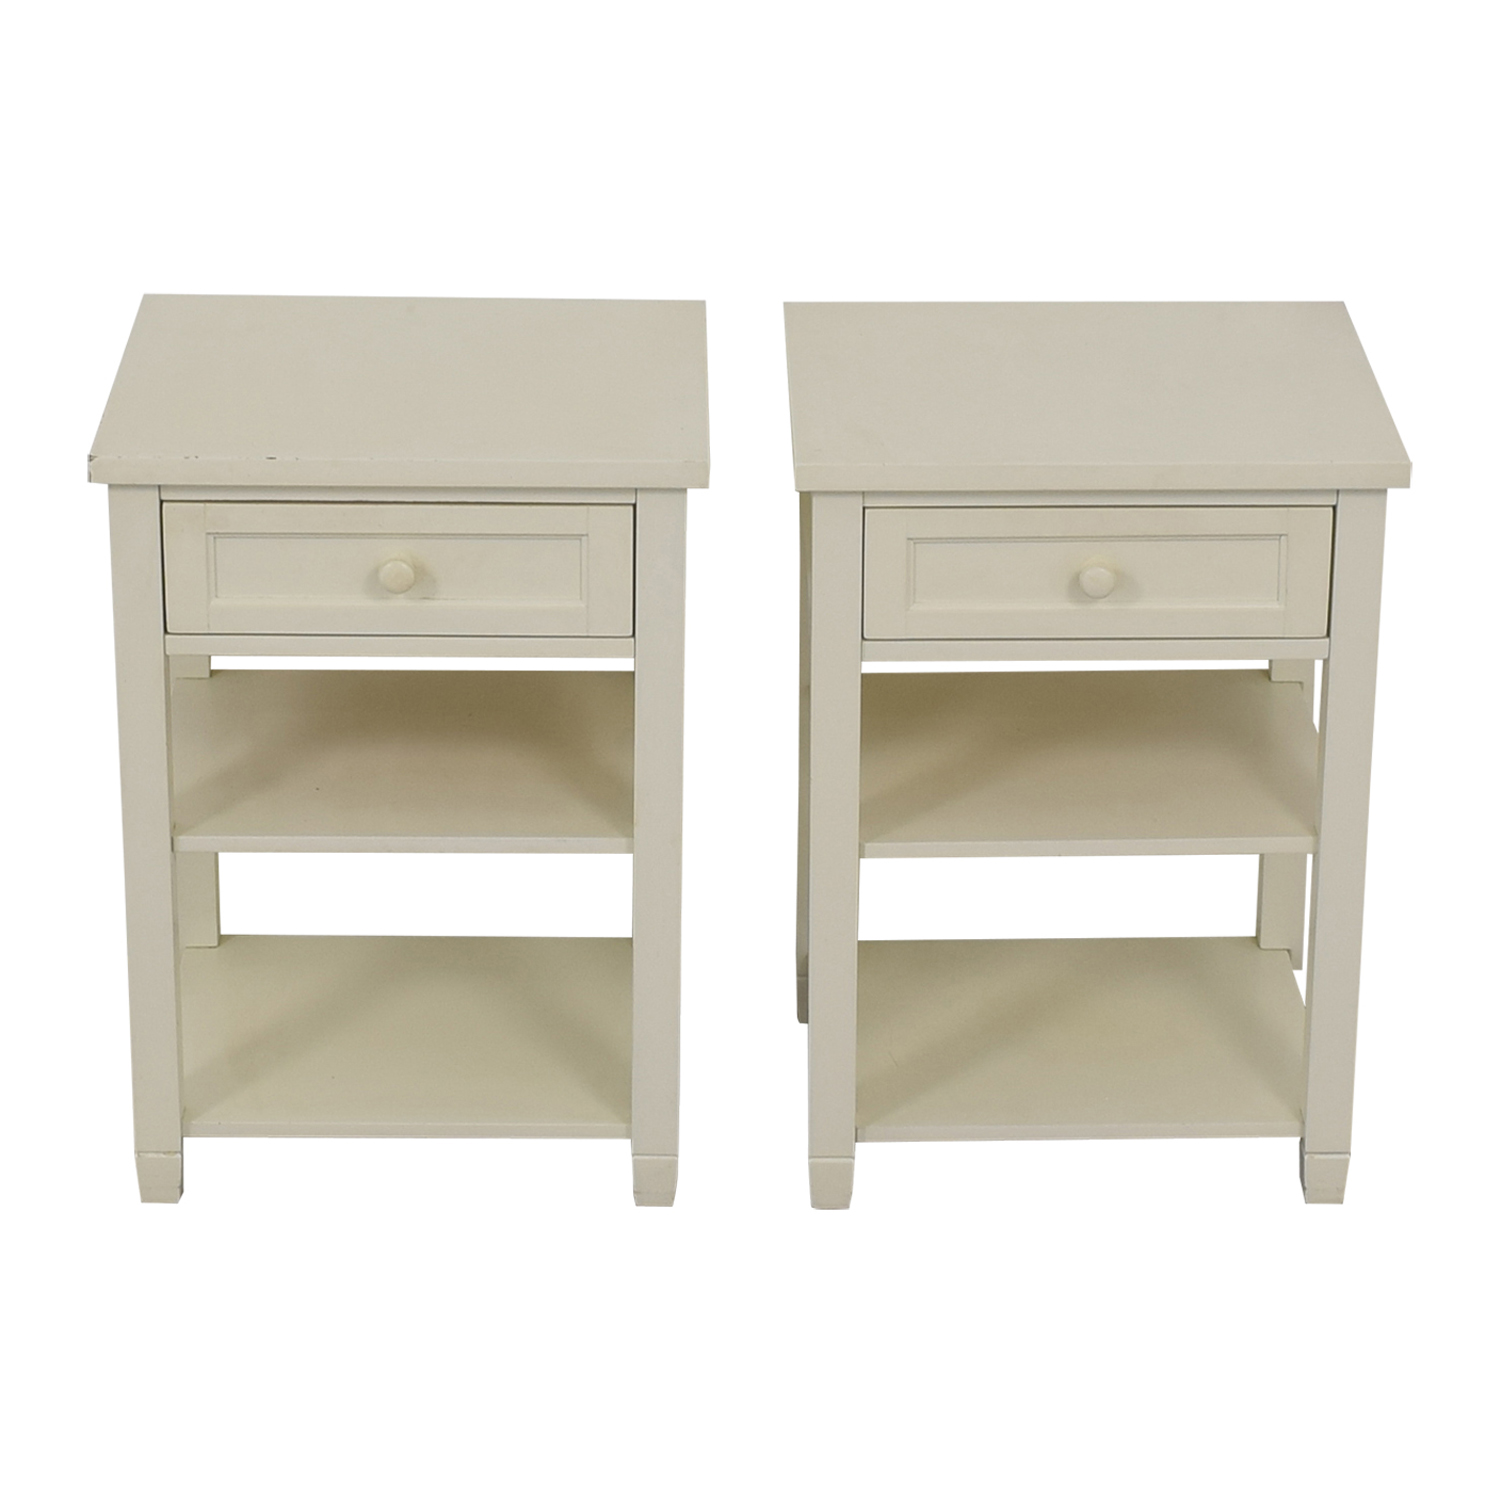 Pottery Barn Kids Pottery Barn Kids White Single Drawer End Tables price